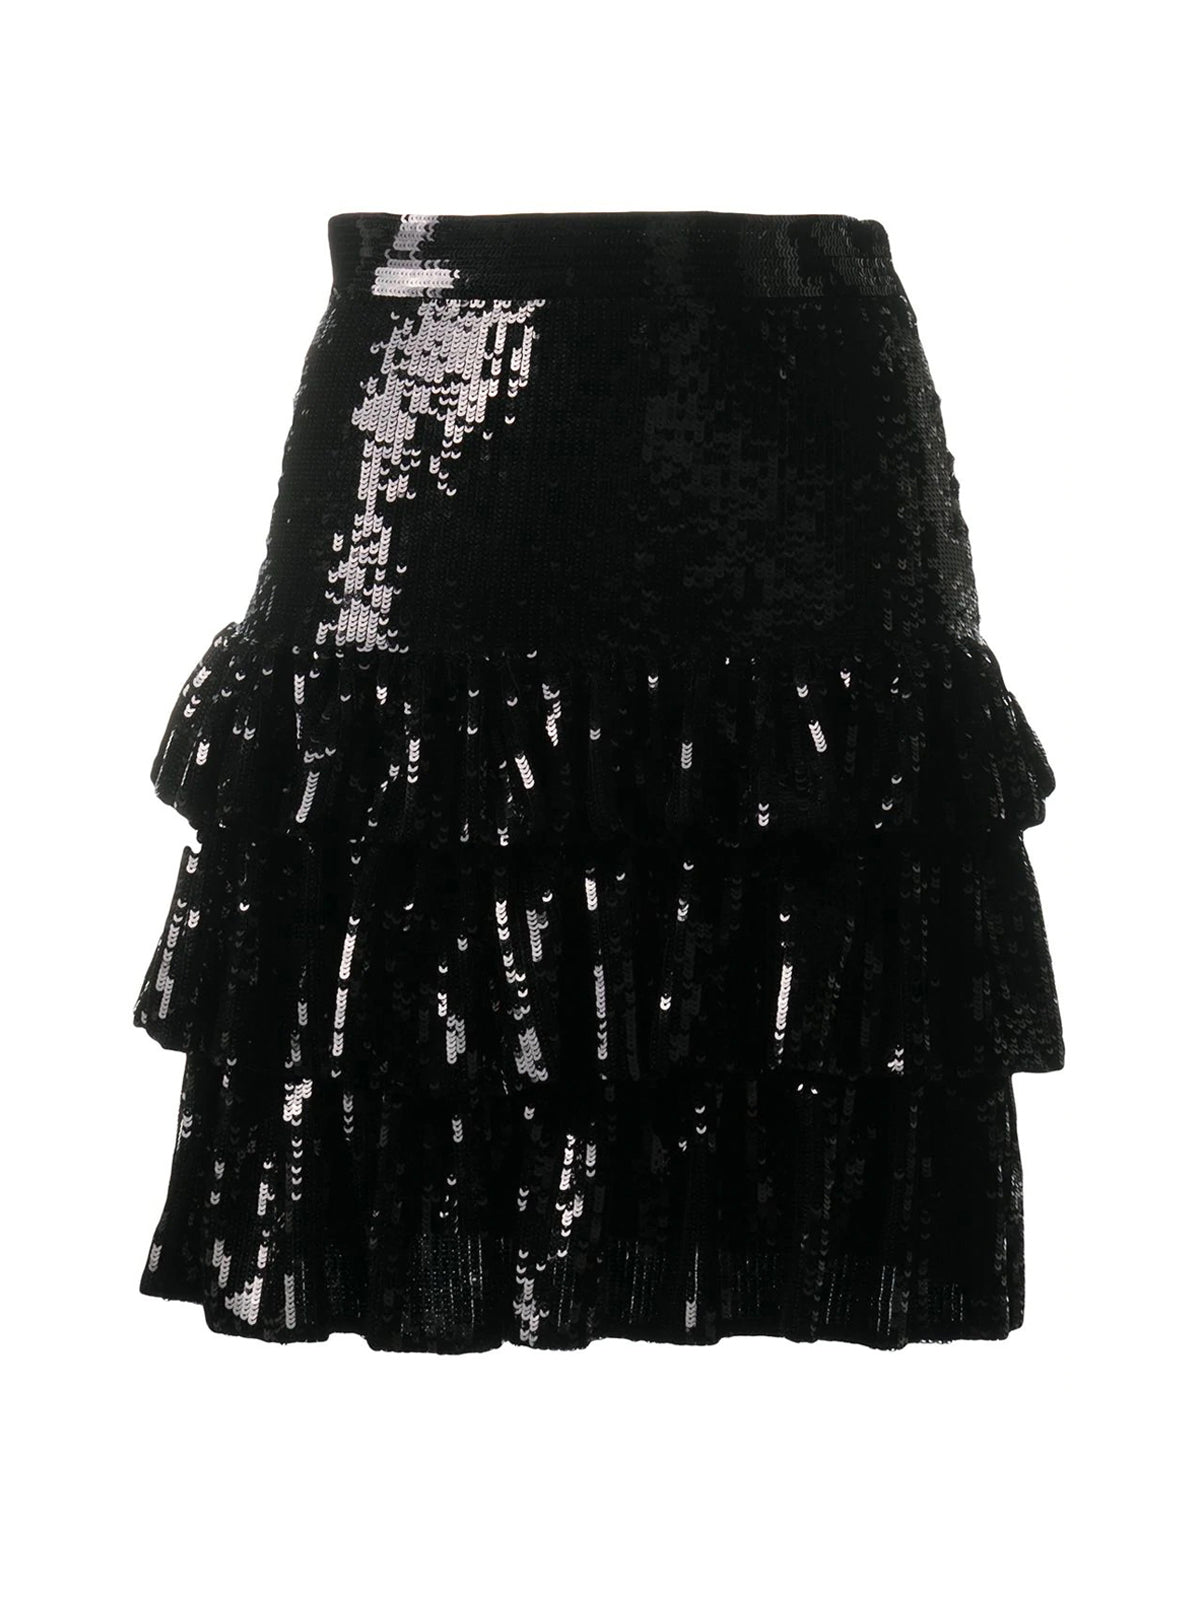 sequin-embellished mini skirt